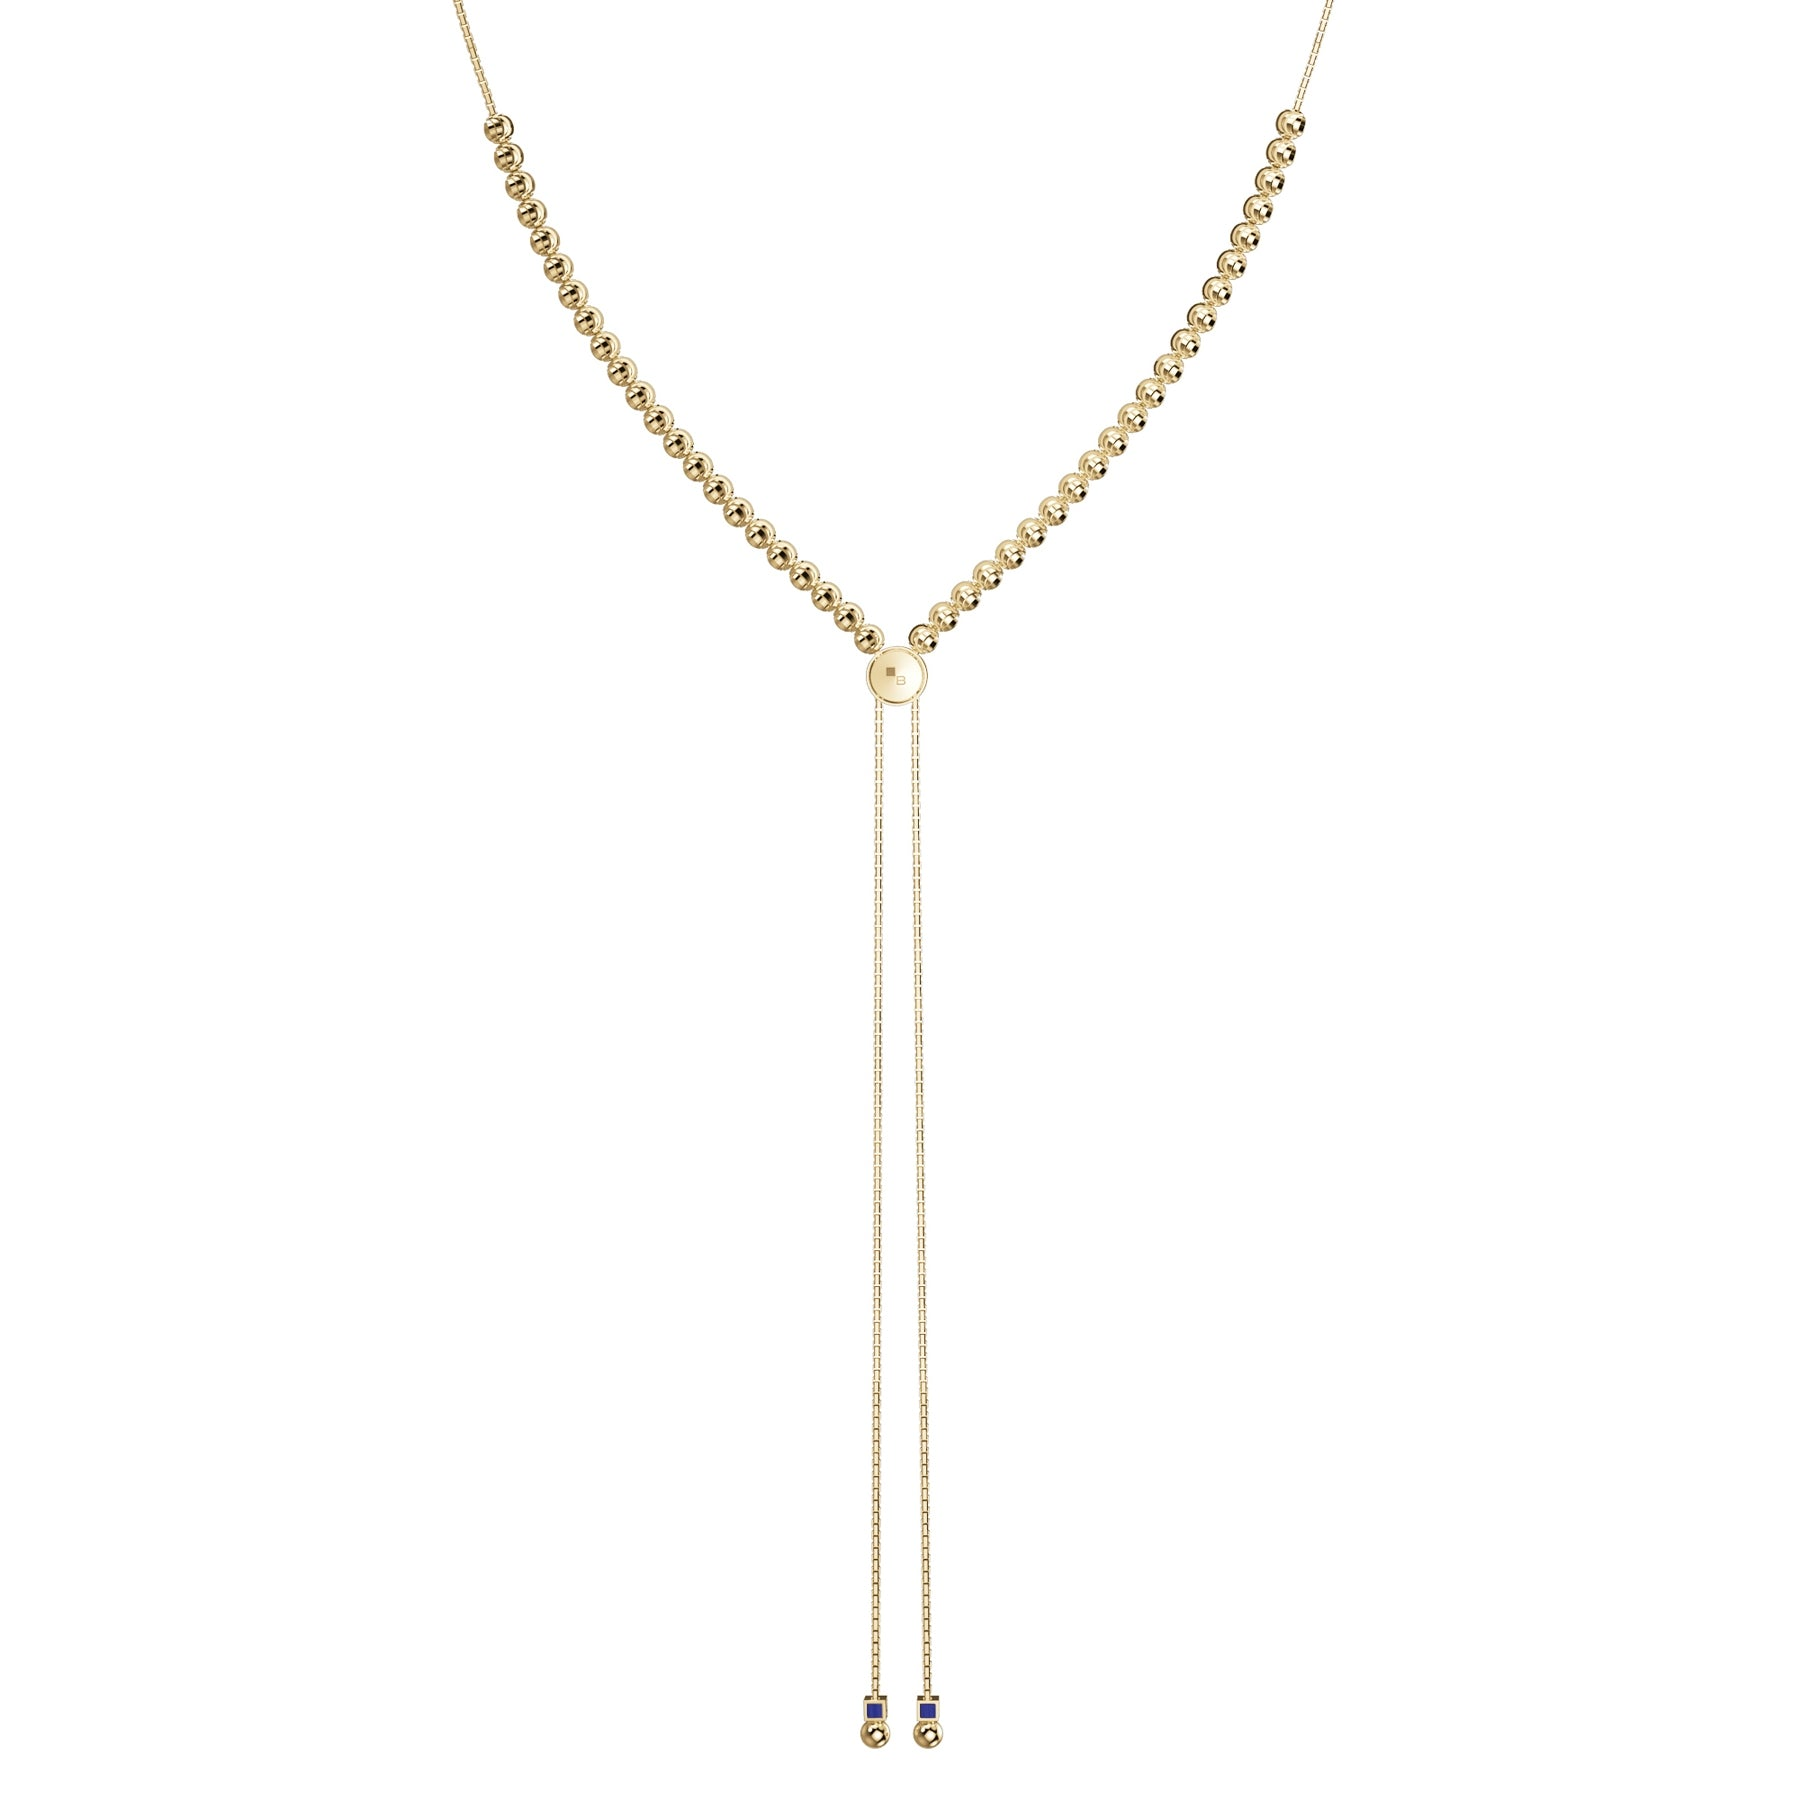 Y Style Adjustable Bead Necklace, Sterling with 18K Yellow Gold Plating